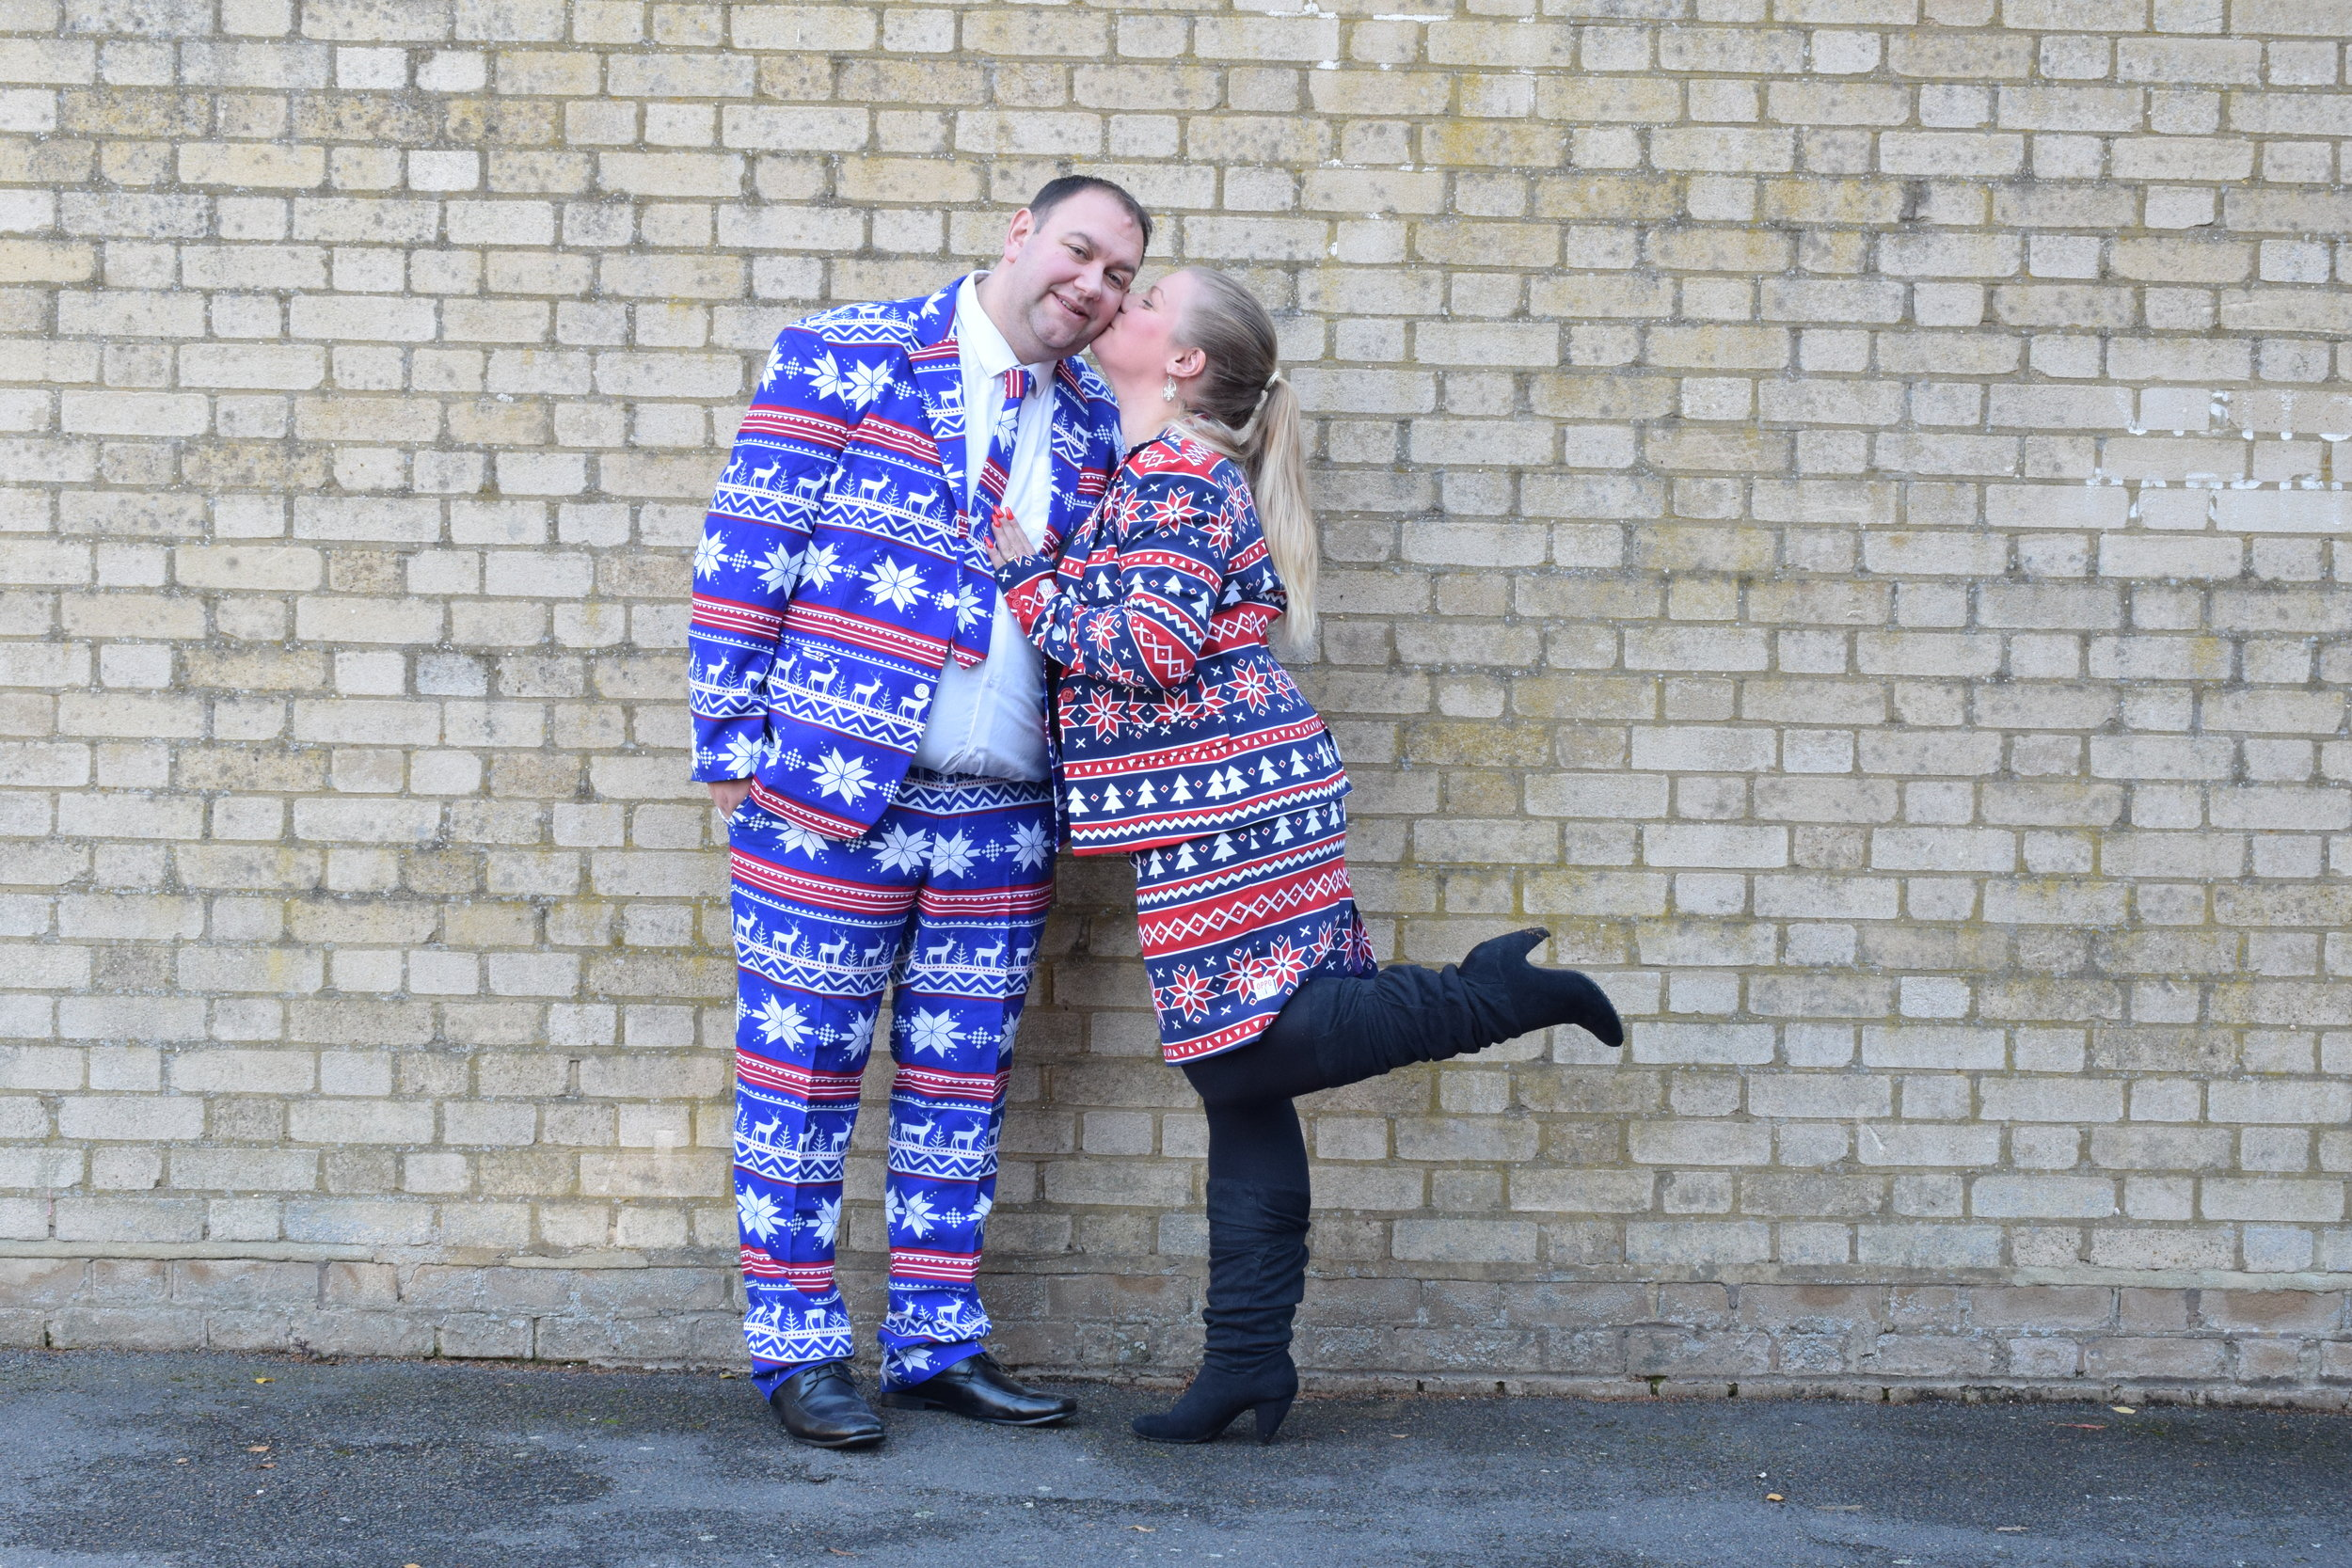 Christmas Suits for men and women from OppoSuits